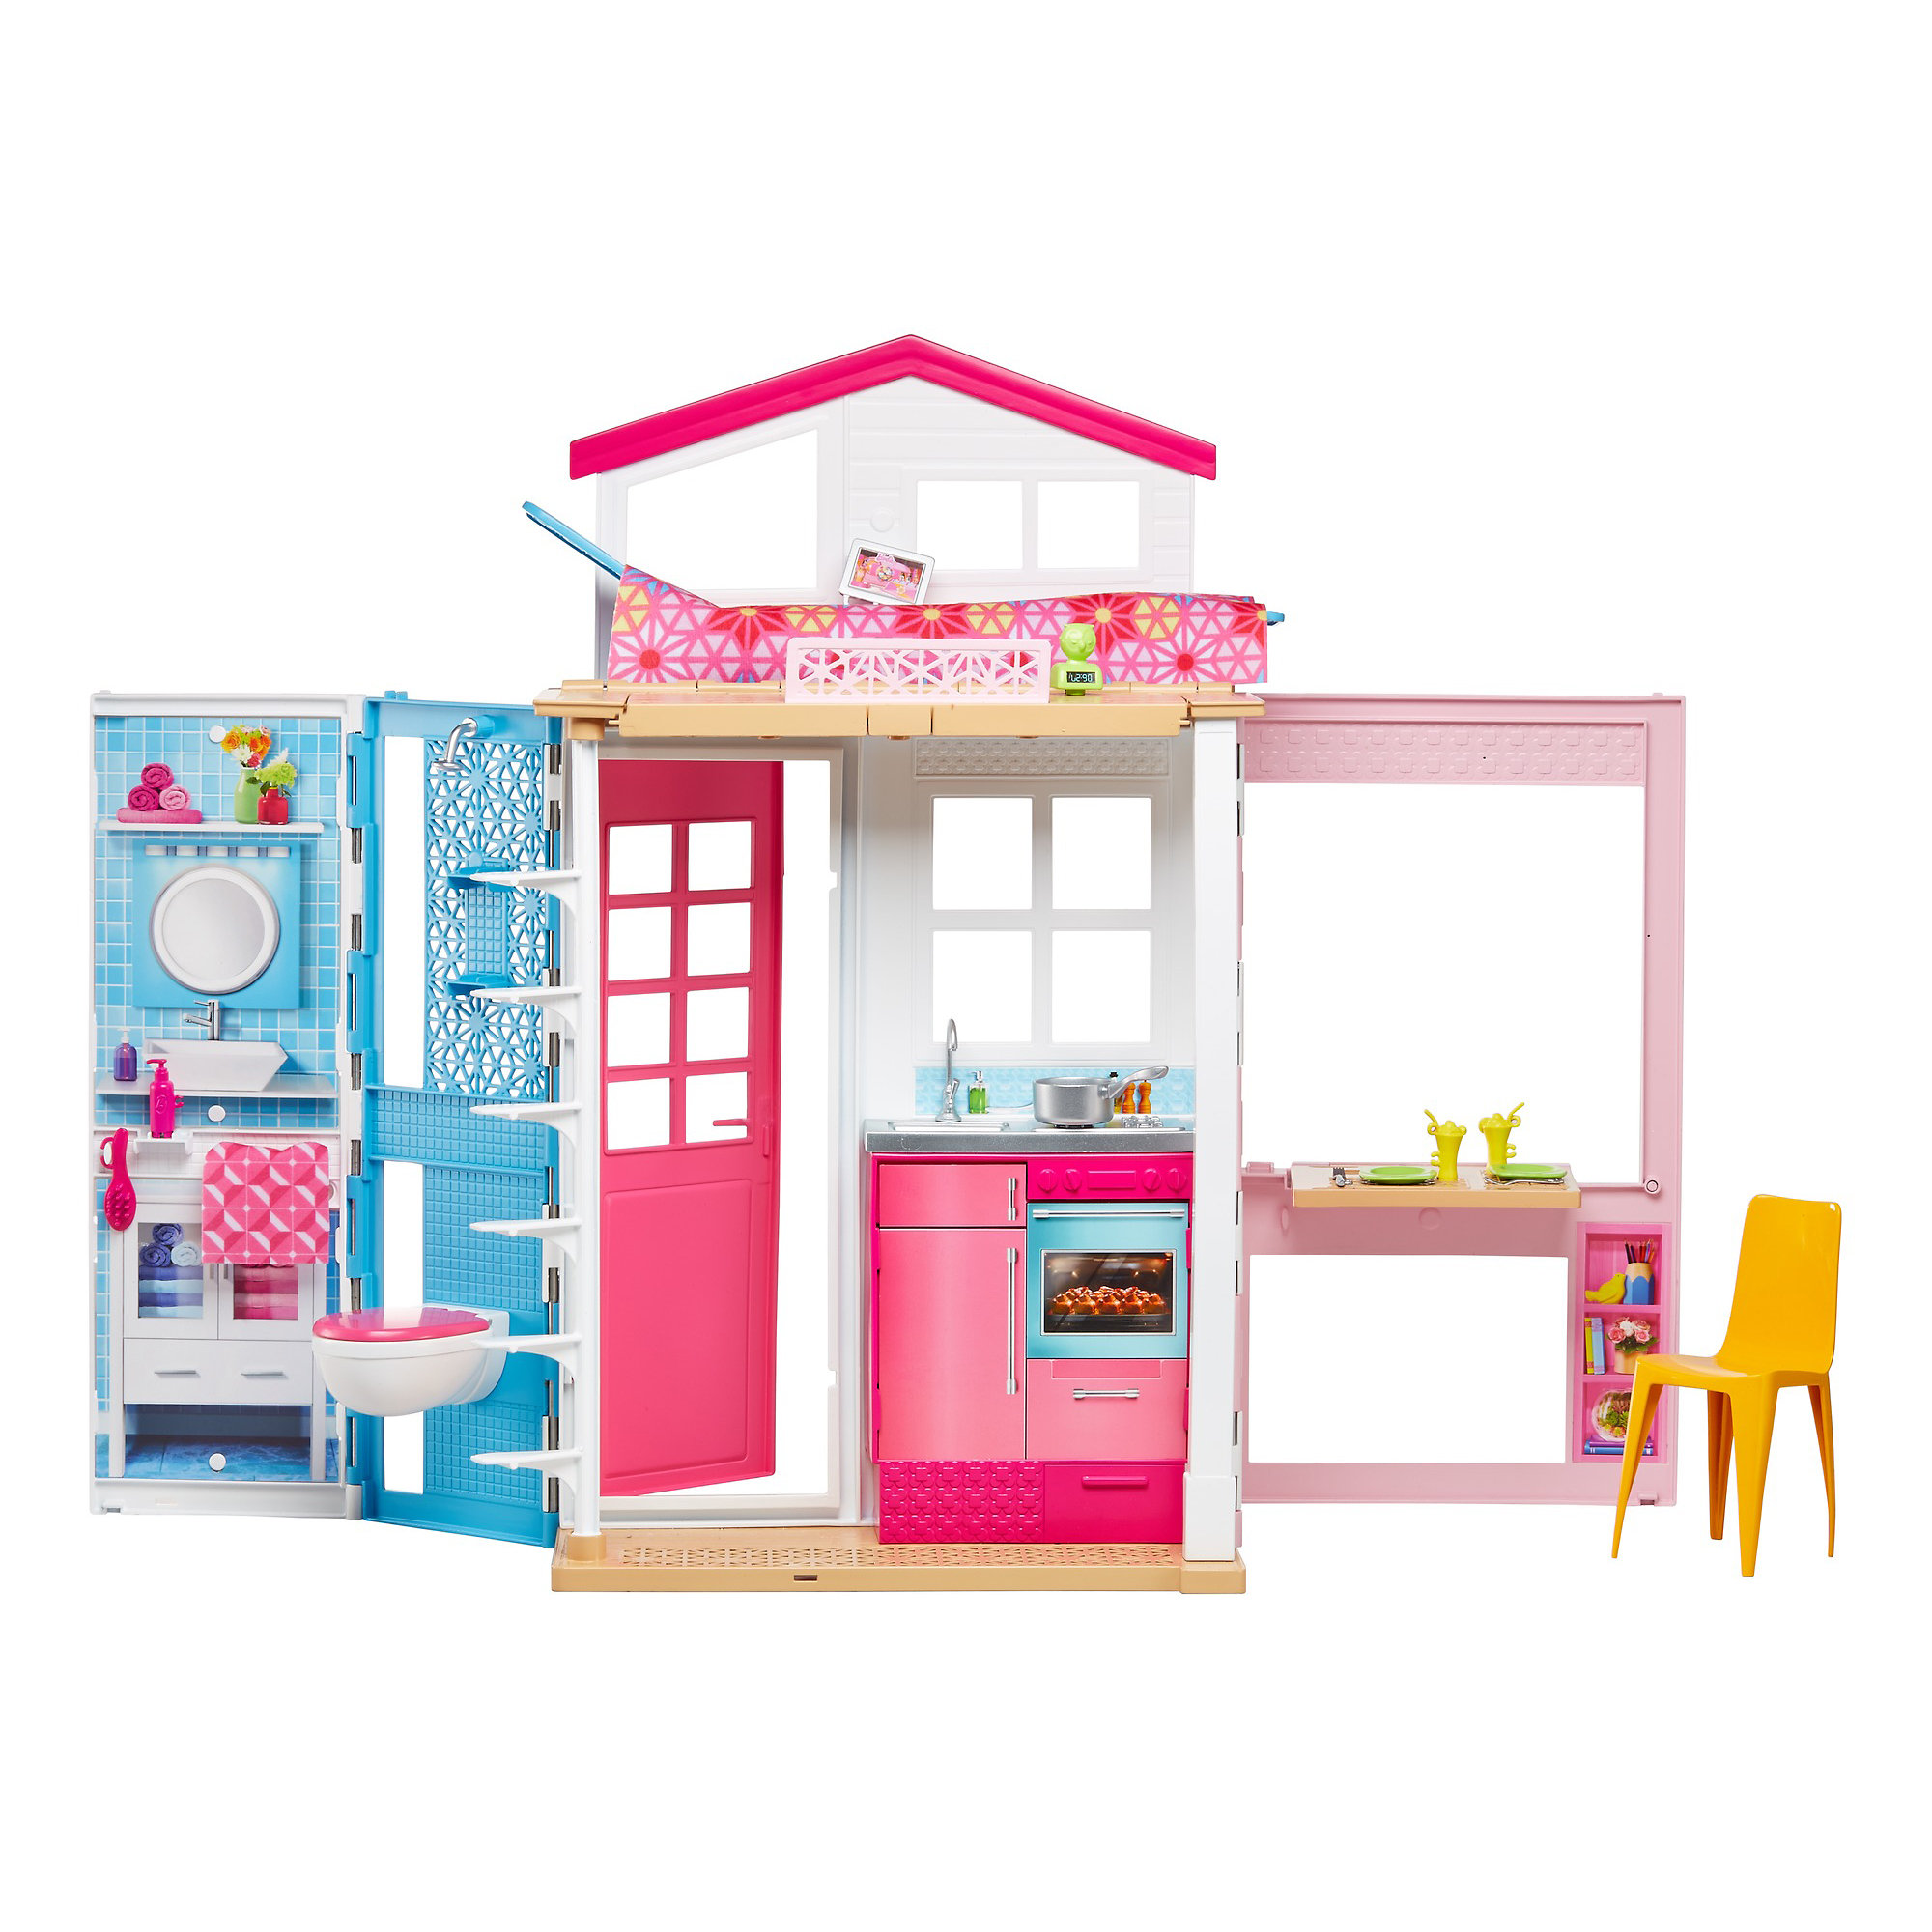 Dollhouses/Play Sets